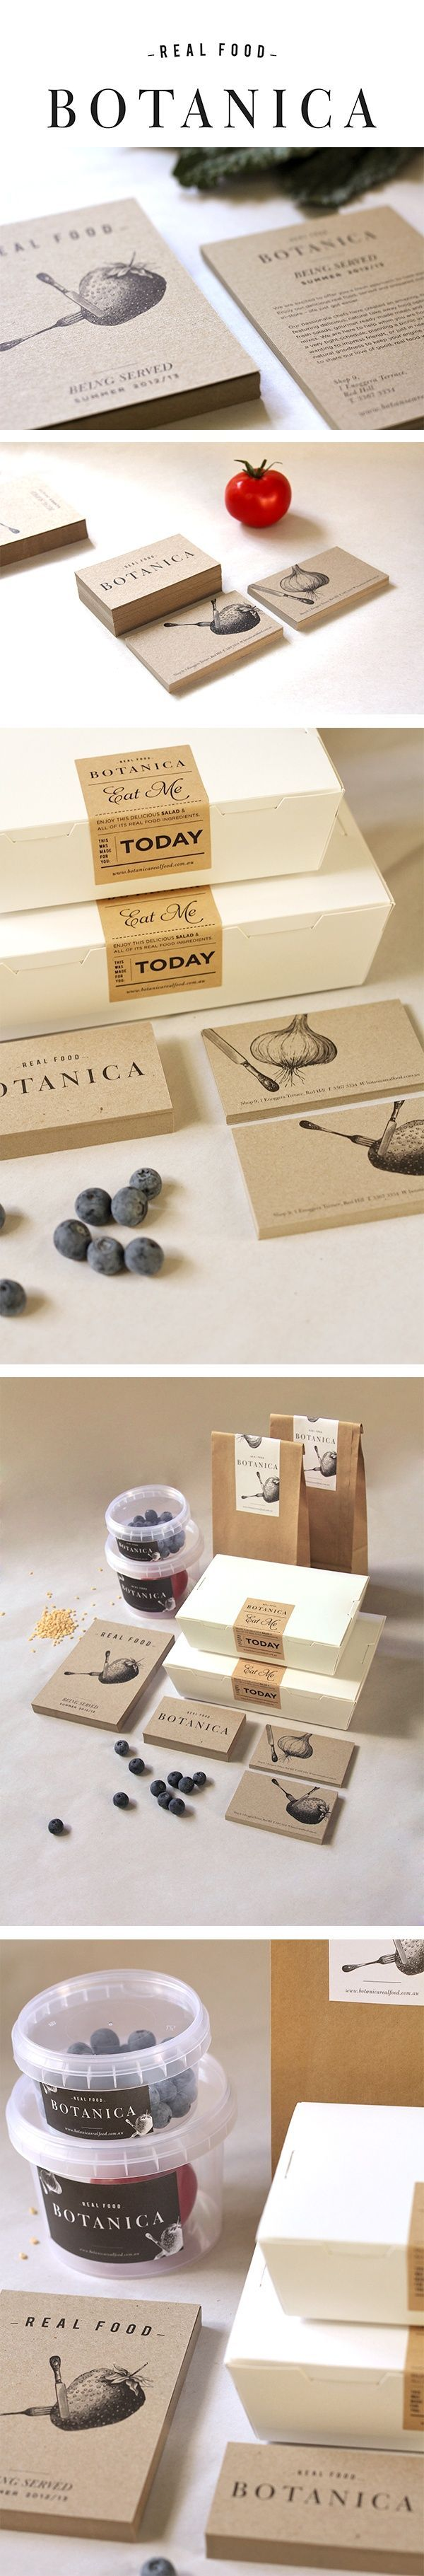 Get Inspired: Packaging Inspiration - IAMTHELAB | Your Handmade Laboratory | Build Your Own Handmade Trifecta/